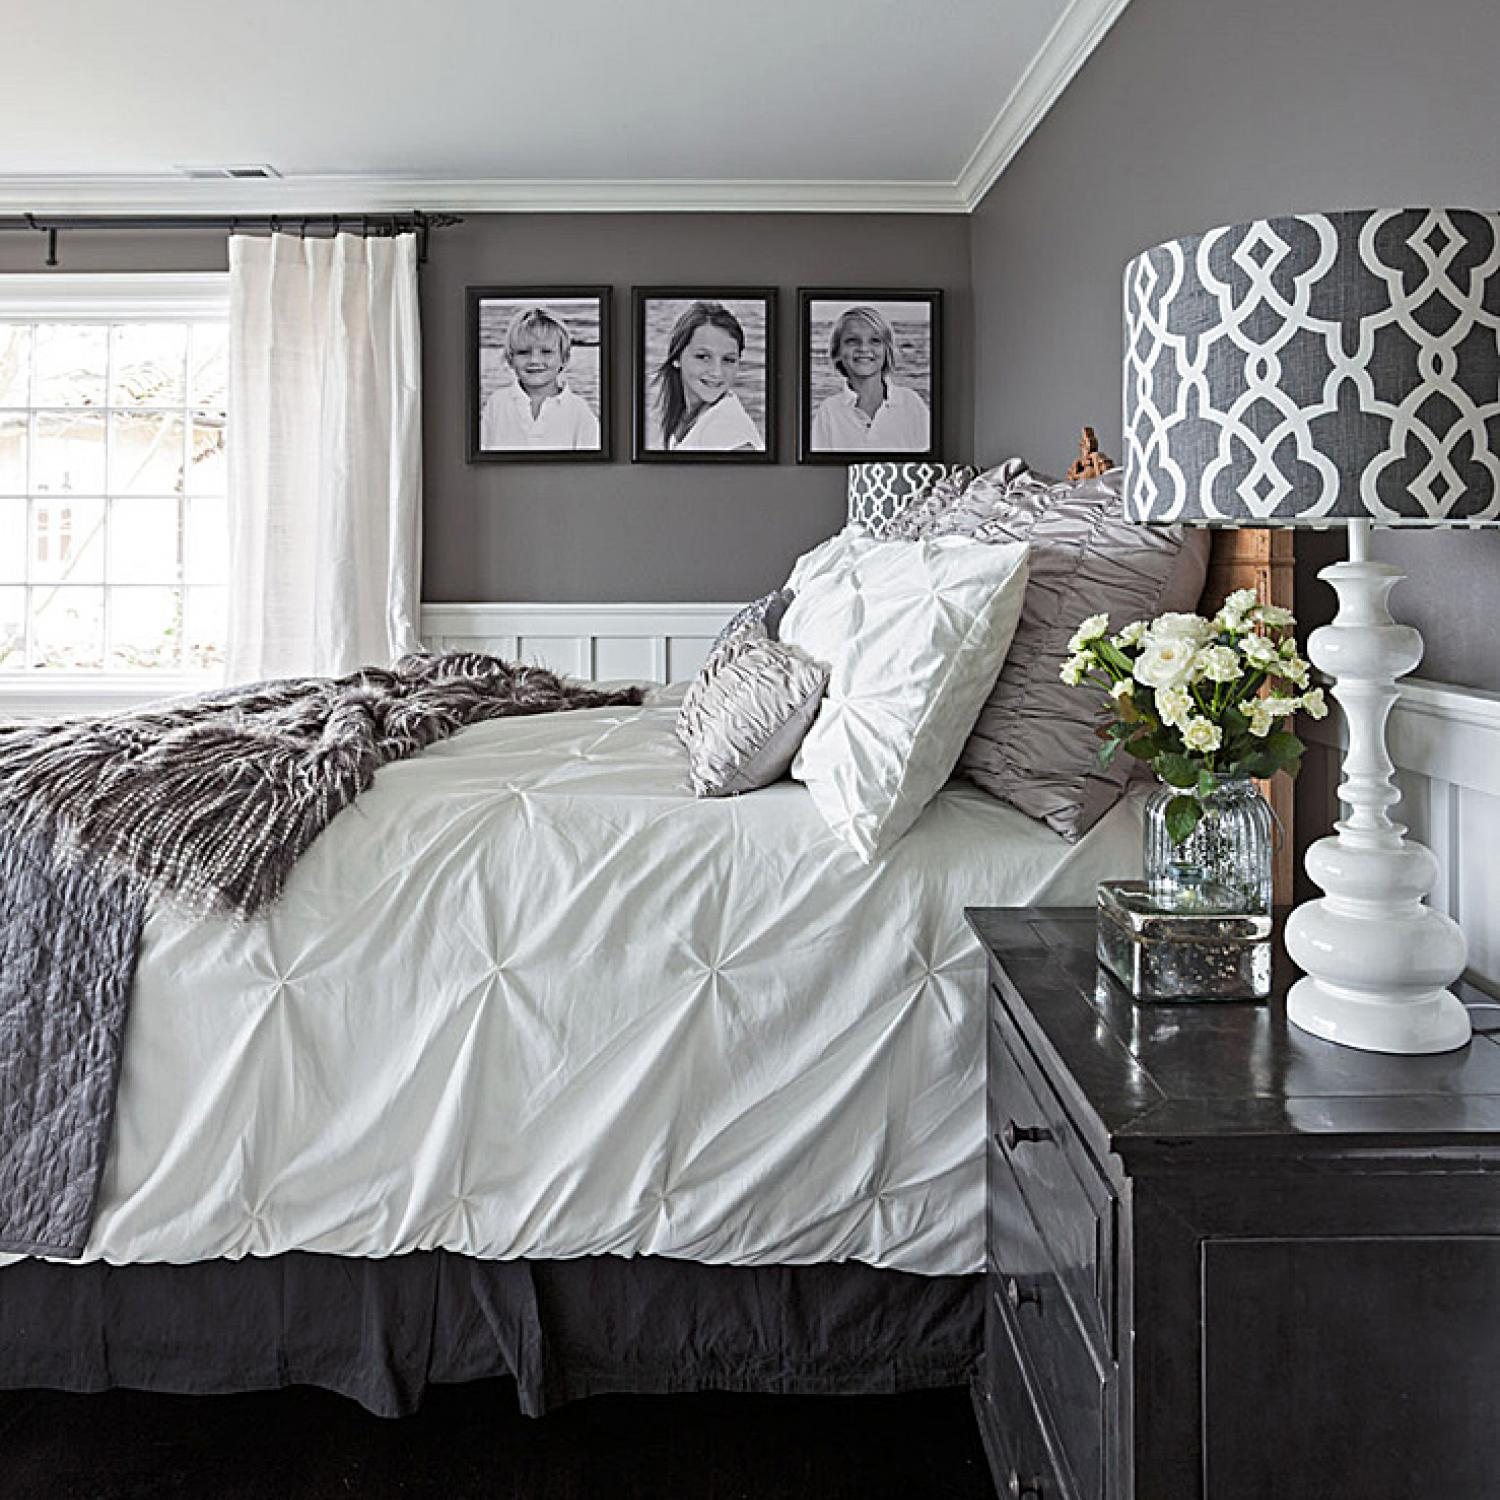 Bedroom Decorating Ideas: Gorgeous Gray-and-White Bedrooms